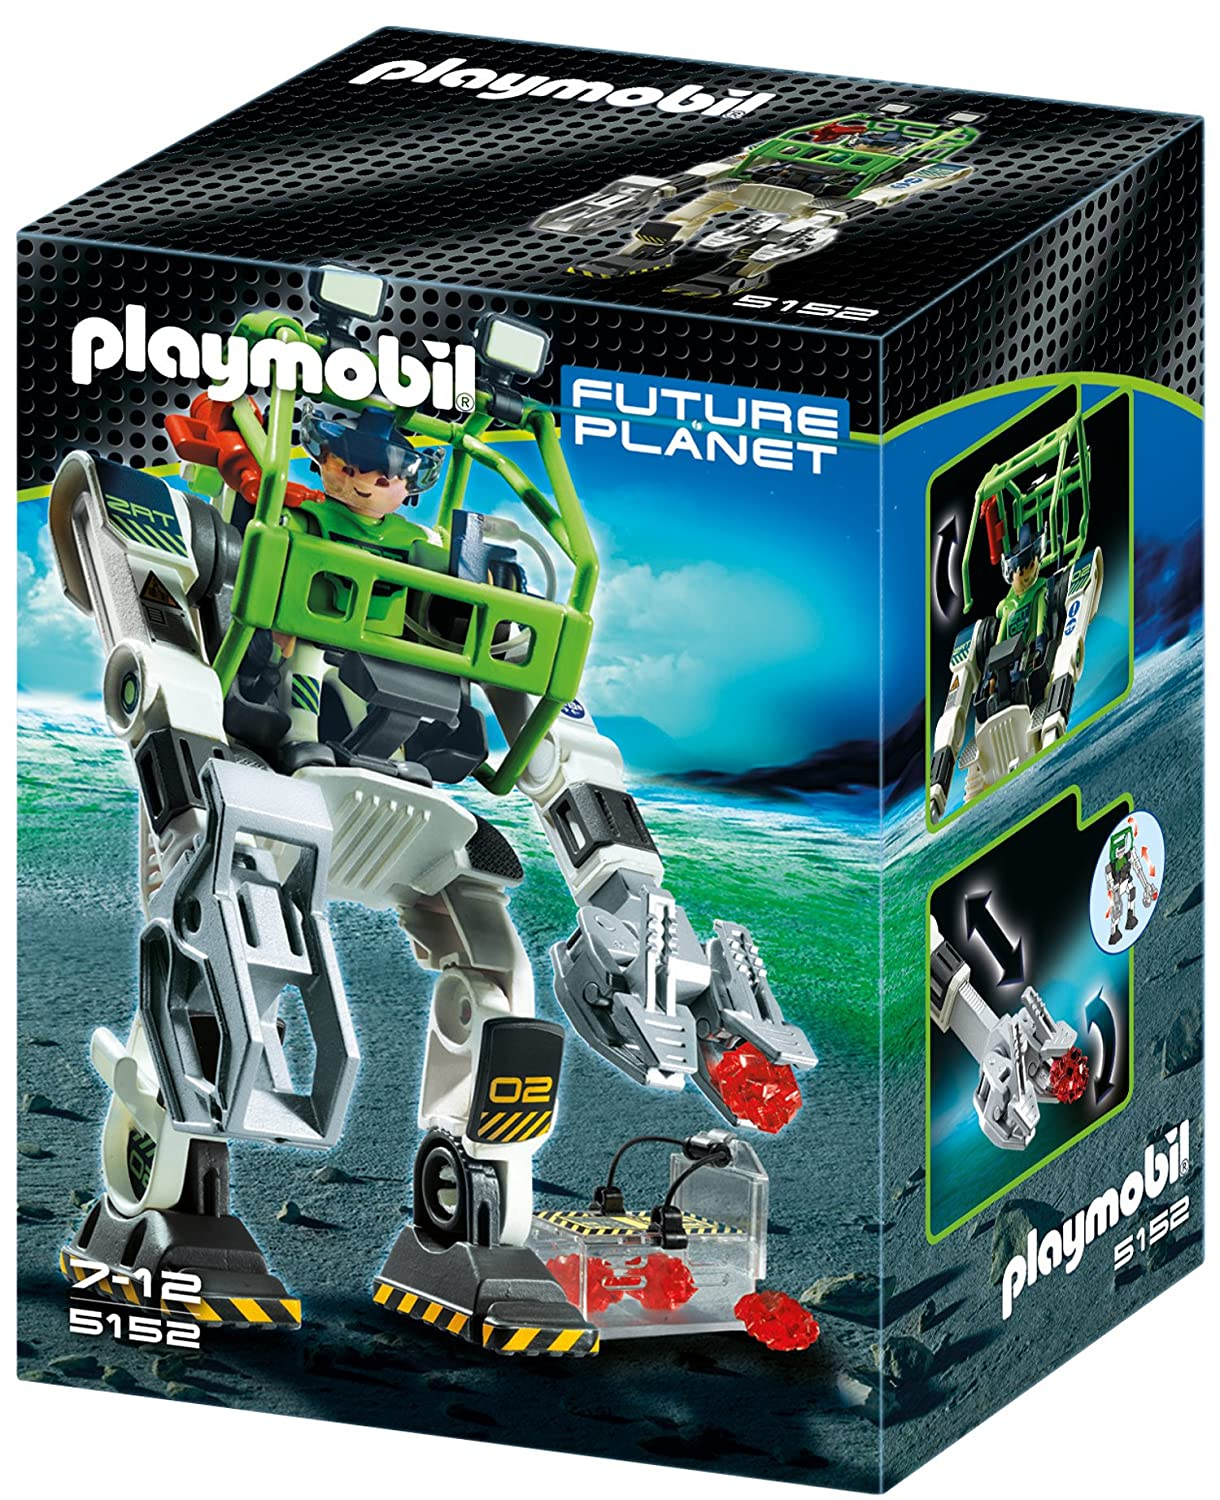 Raumschiff Spielzeug Playmobil E-Rangers Collectobot